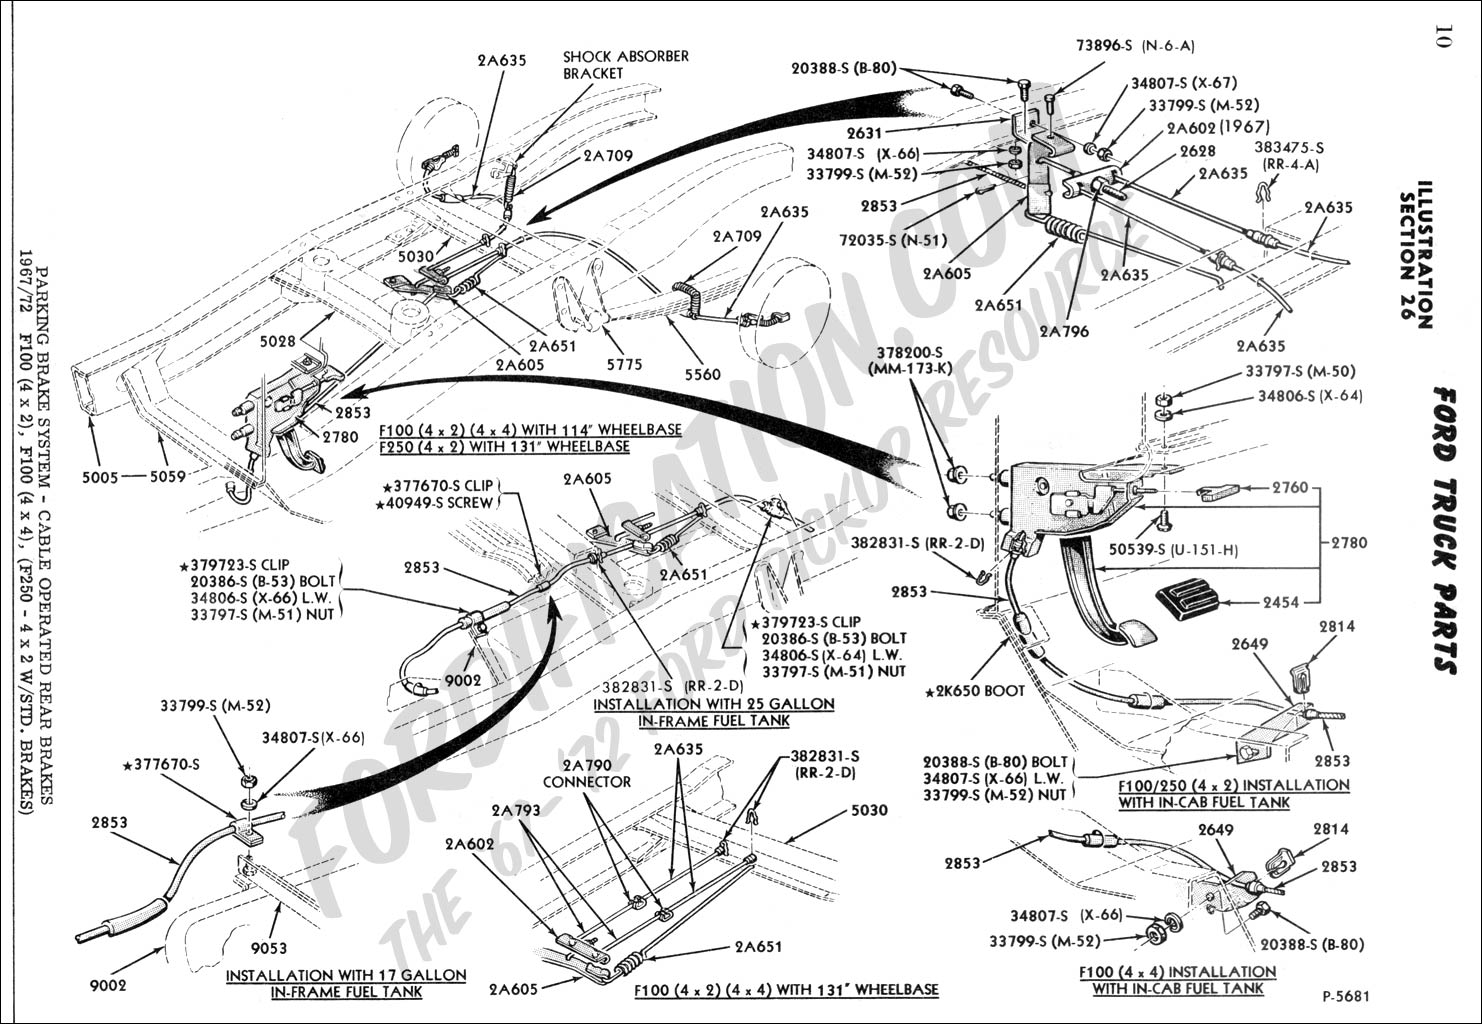 1968 Corvette Alternator Wiring Diagram Real Camaro Radio Ford Truck Technical Drawings And Schematics Section B Dash 1969